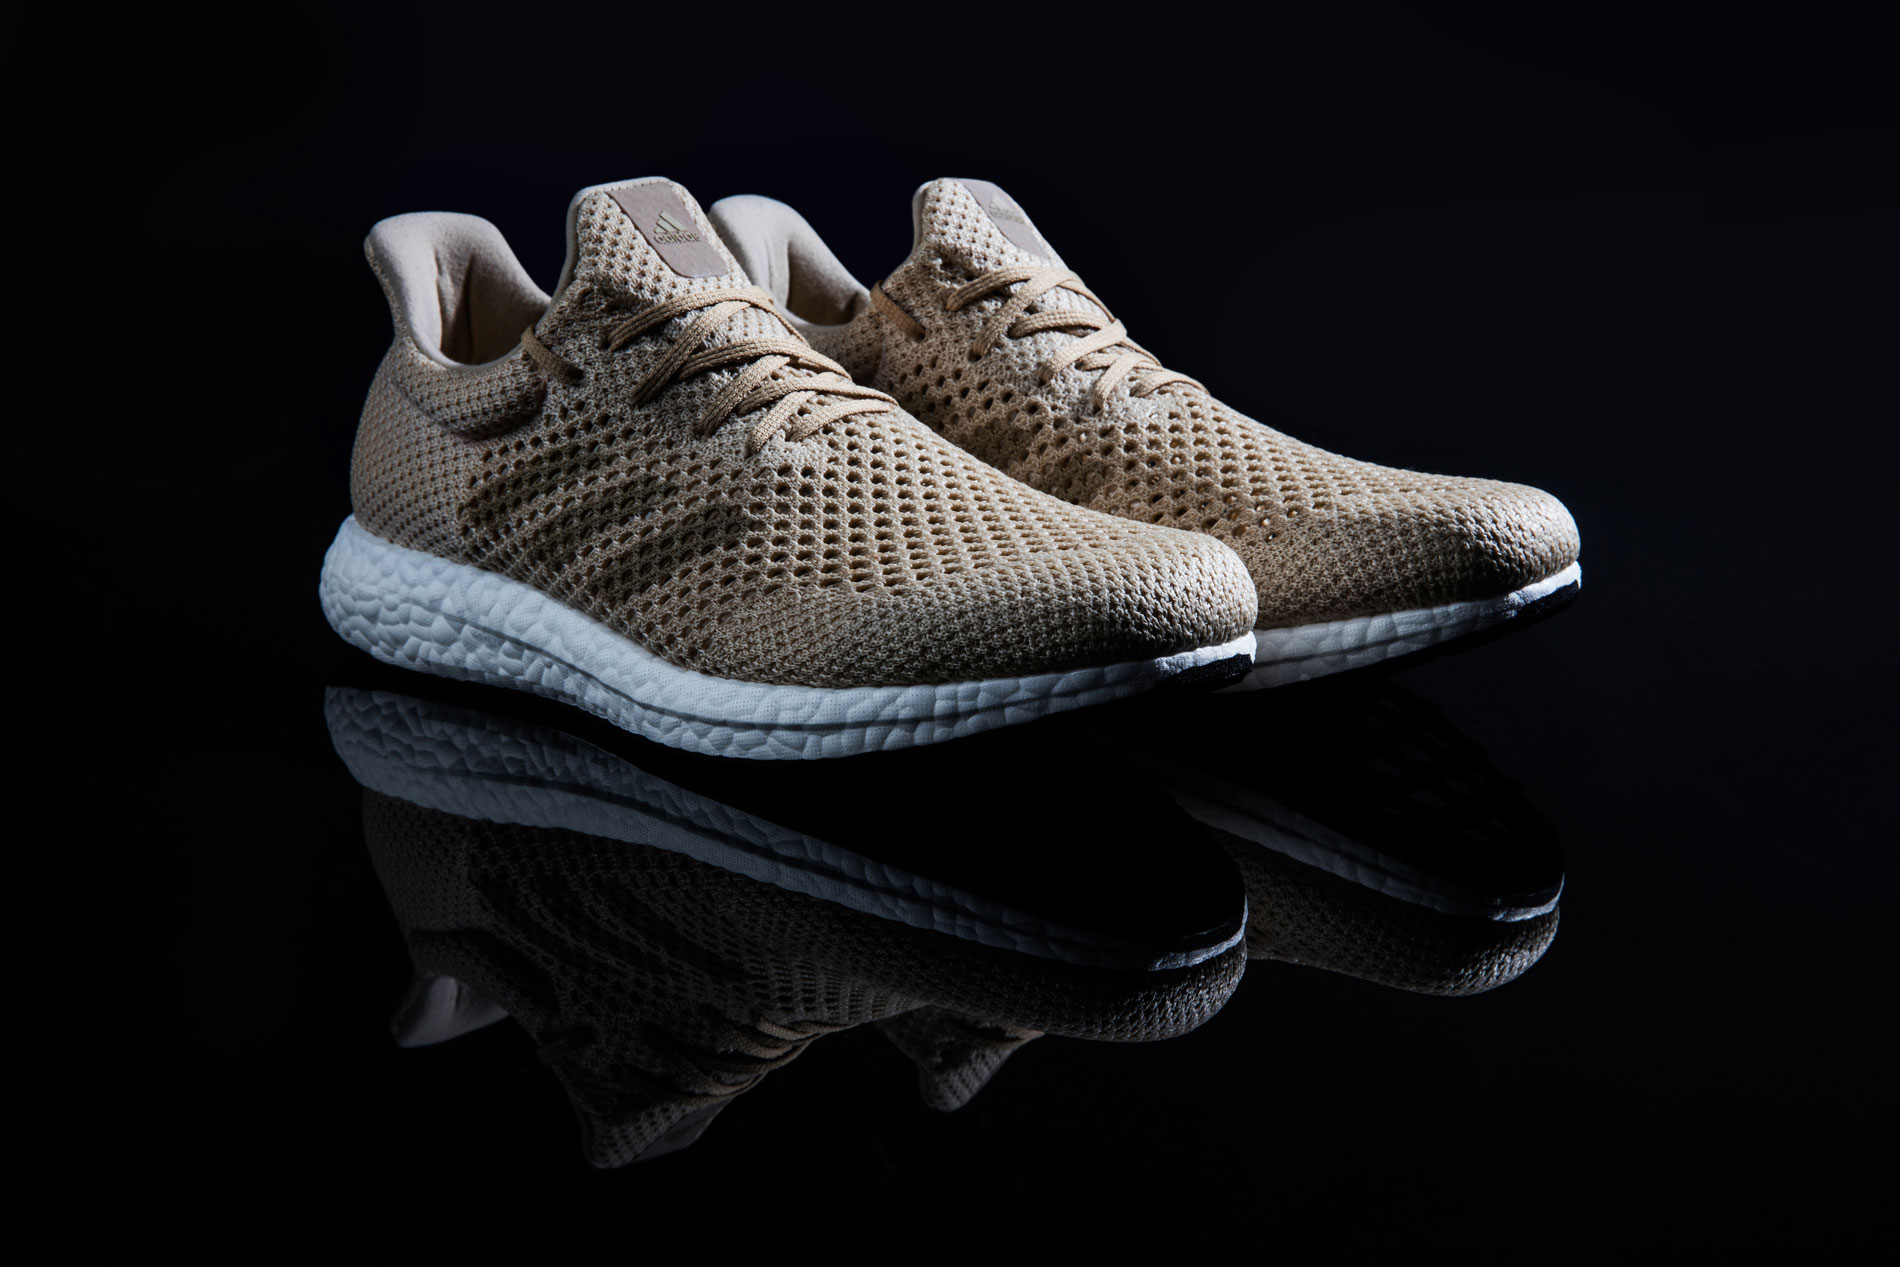 Adidas Futurecraft Biofabric made from Biosteel fibre